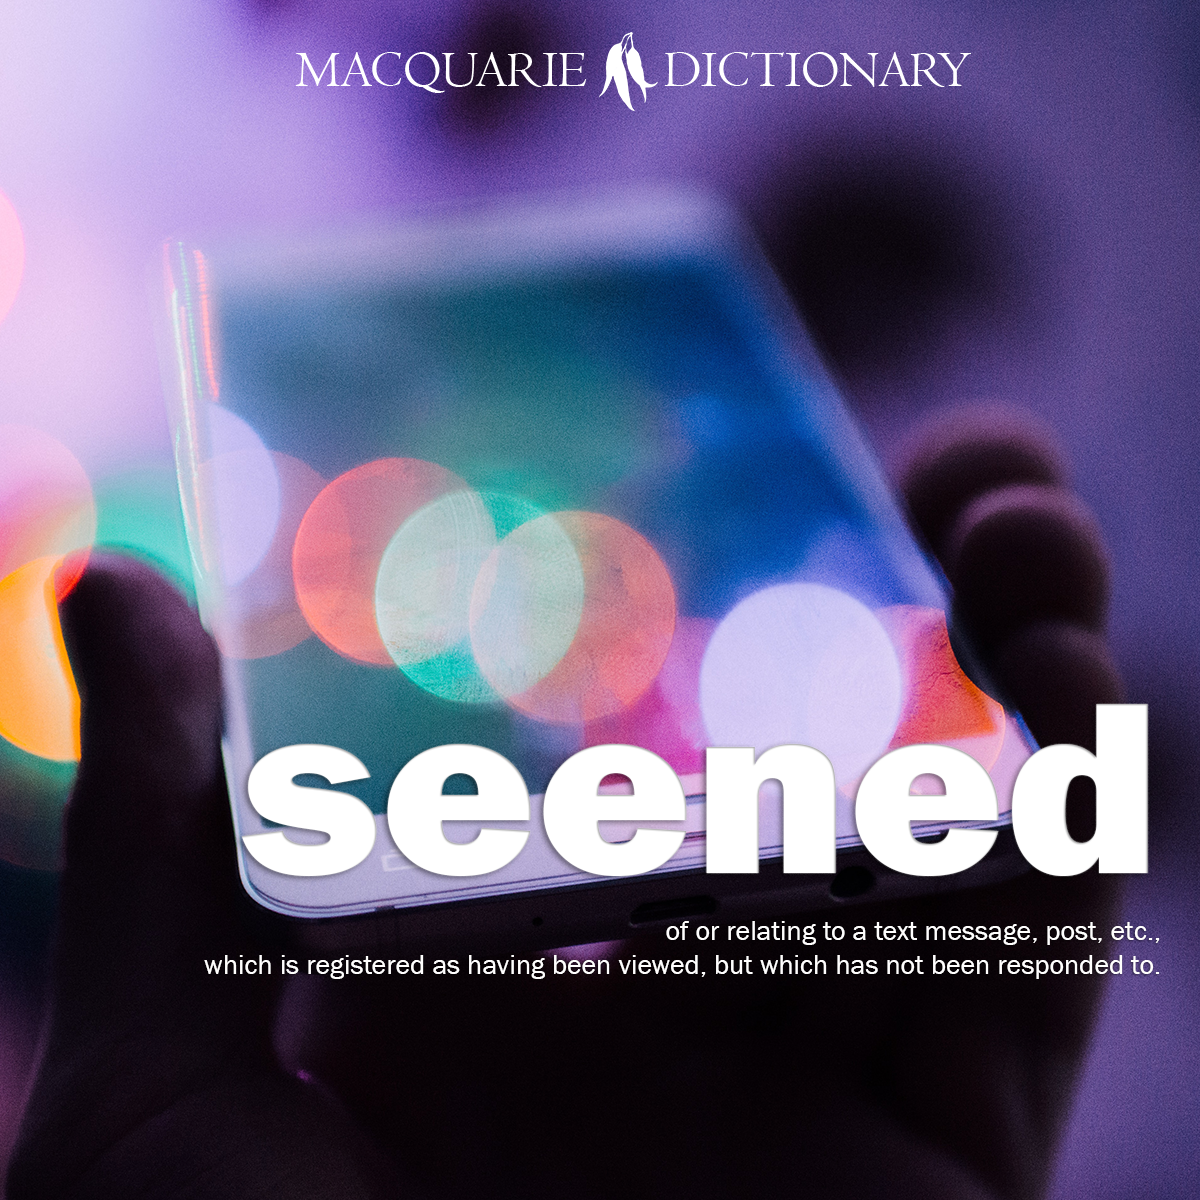 seened - of or relating to a text message, post, etc., which is registered as having been viewed, but which has not been responded to.